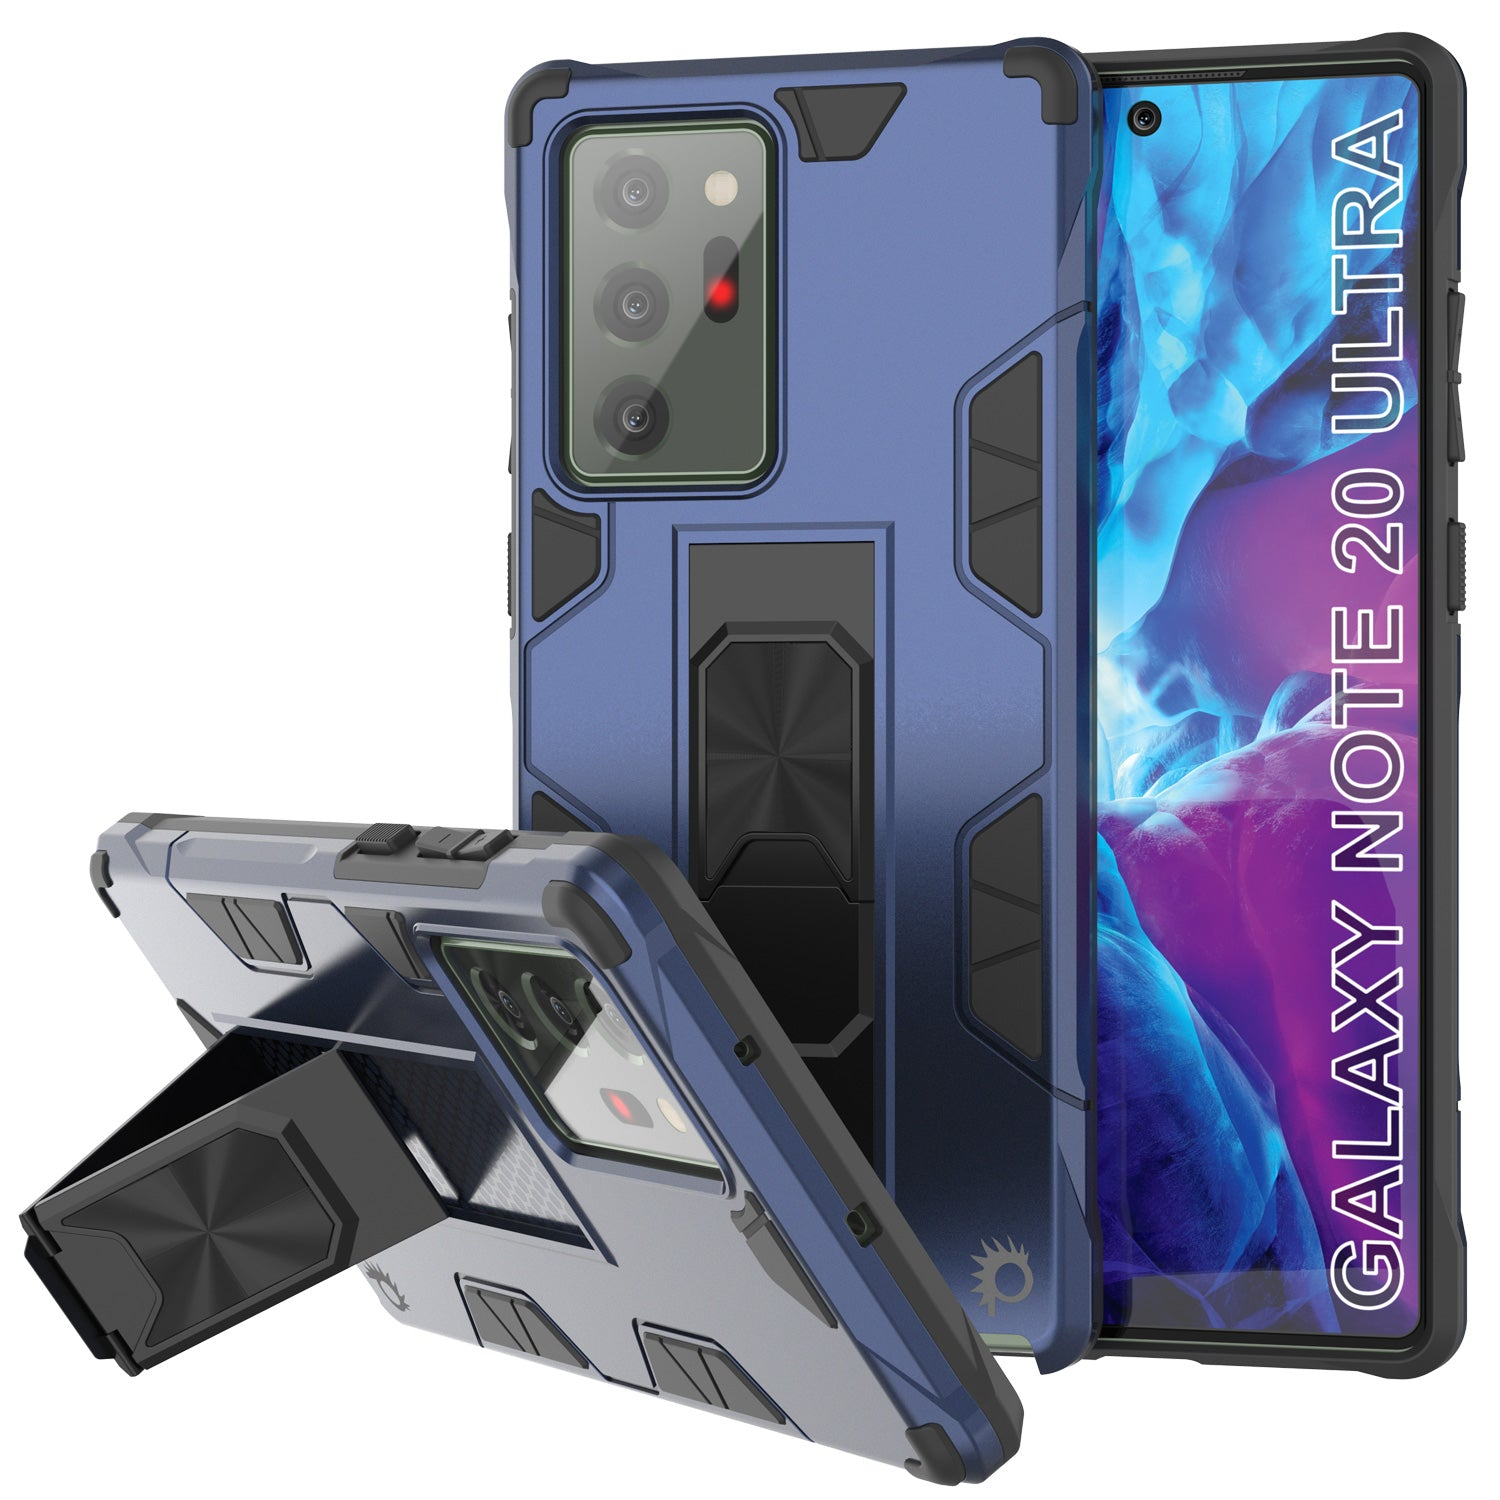 Punkcase Note 20 Ultra Case [ArmorShield Series] Military Style Protective Dual Layer Case Navy-Blue